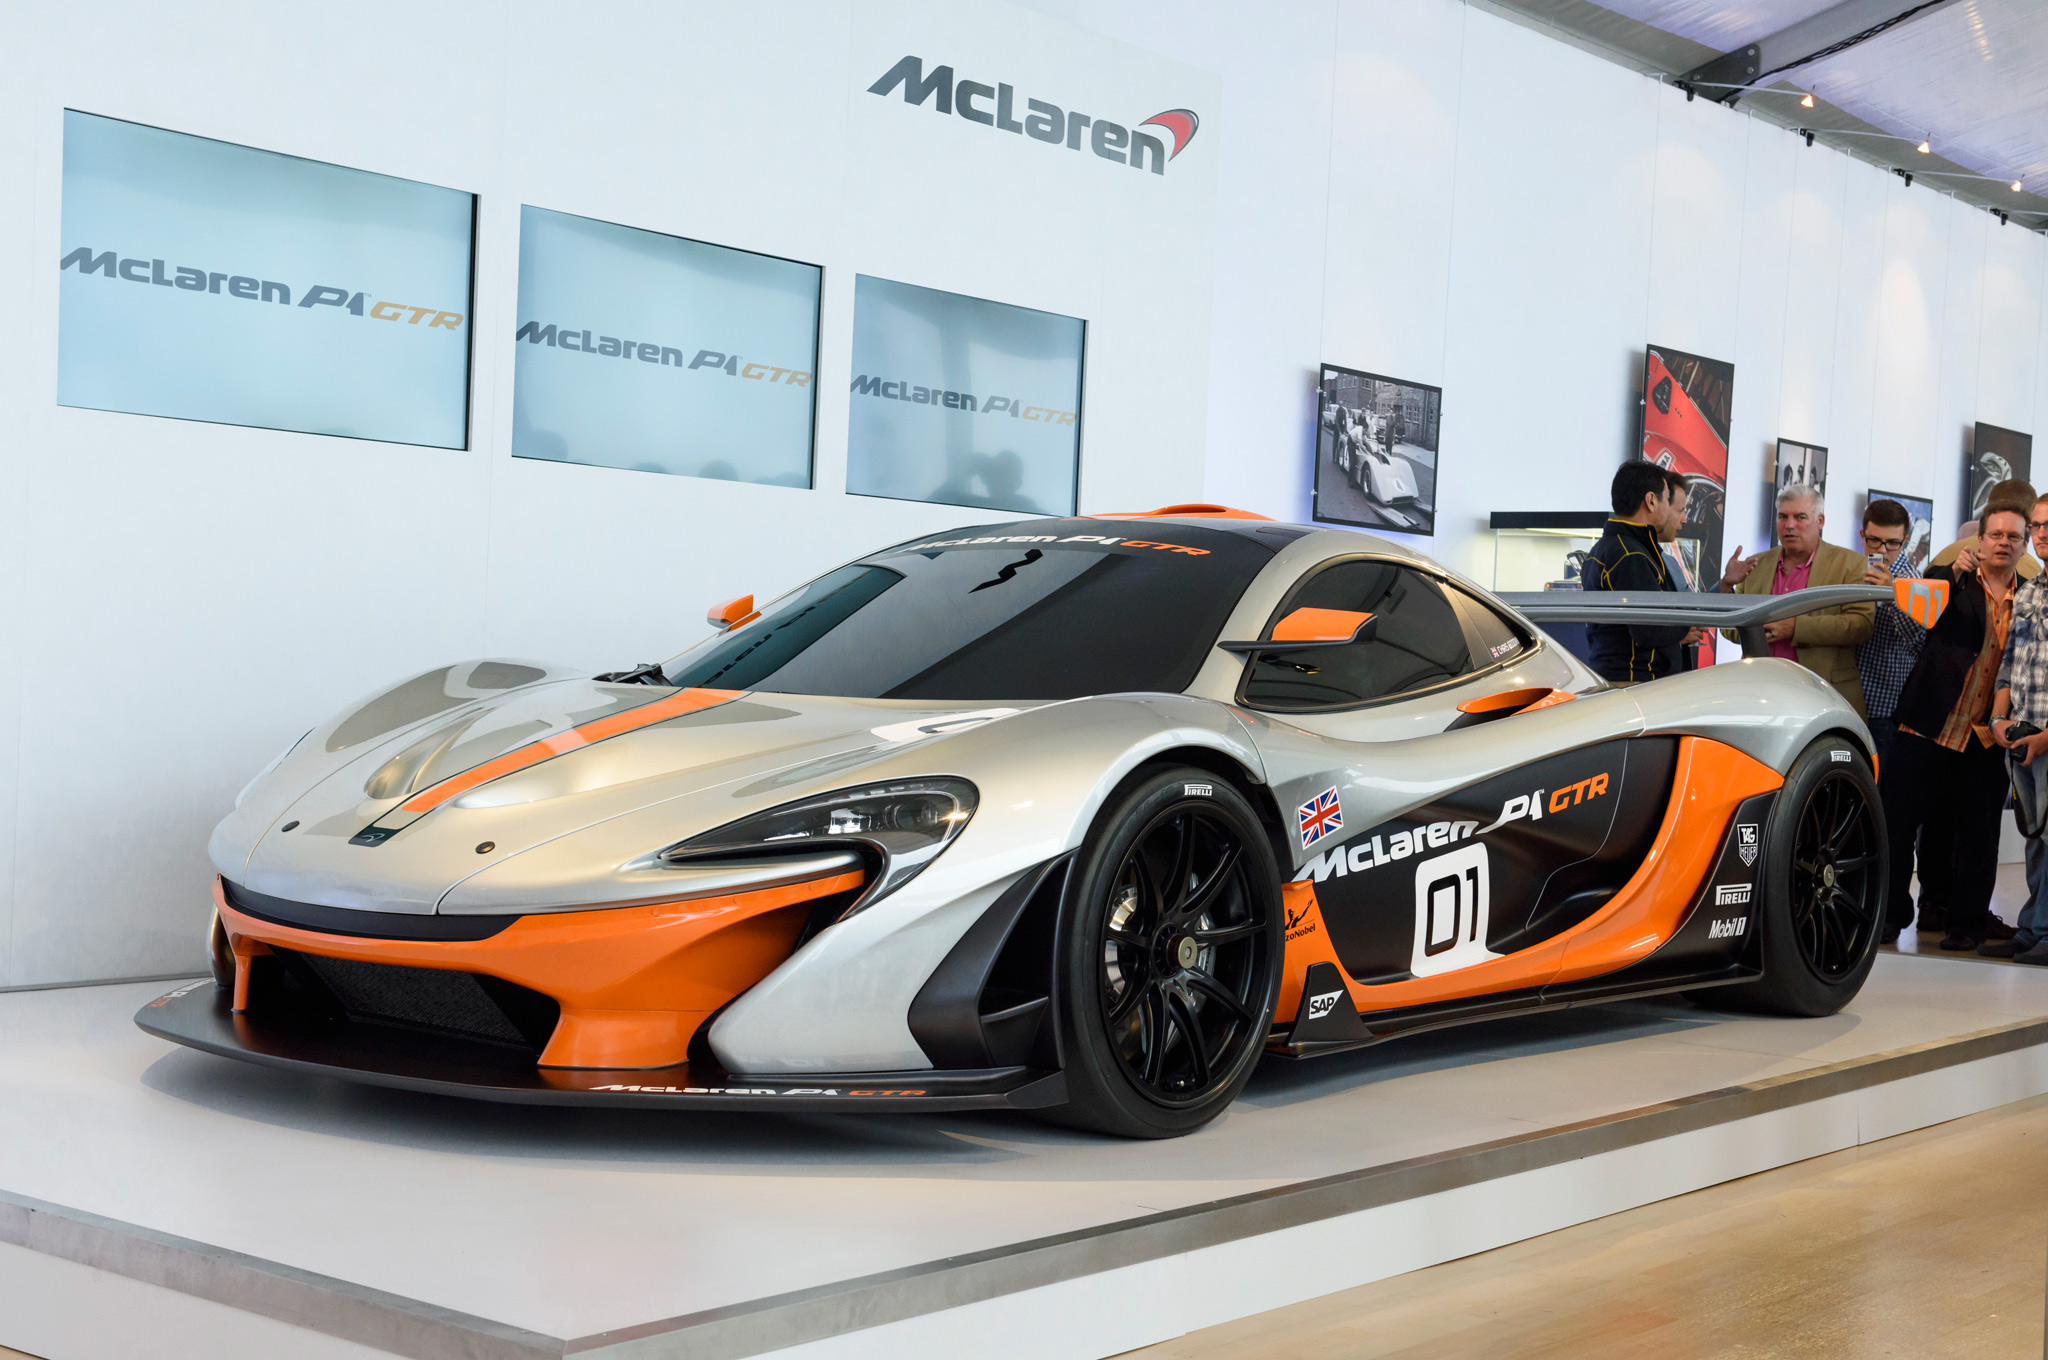 437d1f455cb307 986-HP McLaren P1 GTR Concept Revealed at Pebble Beach - MotorTrend